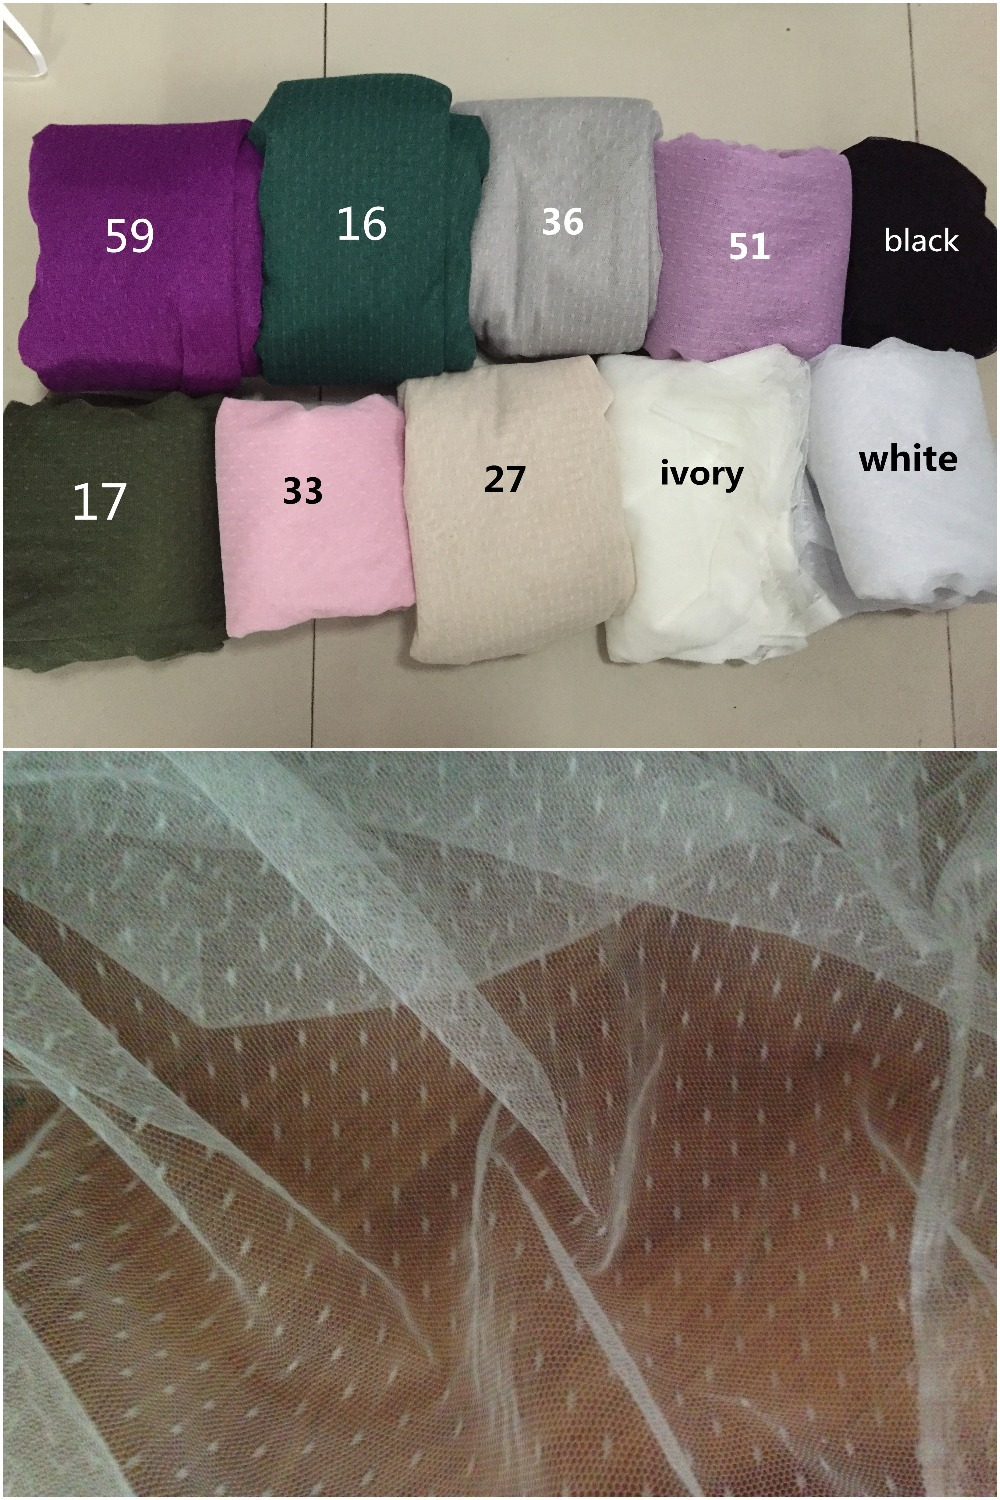 Factory! pink, ivory, white, black, army green, lavender, purple, grey, 165cm wide 10meters/lot spot dot mesh fabric, grid cloth-in Fabric from Home & Garden on AliExpress - 11.11_Double 11_Singles' Day 1